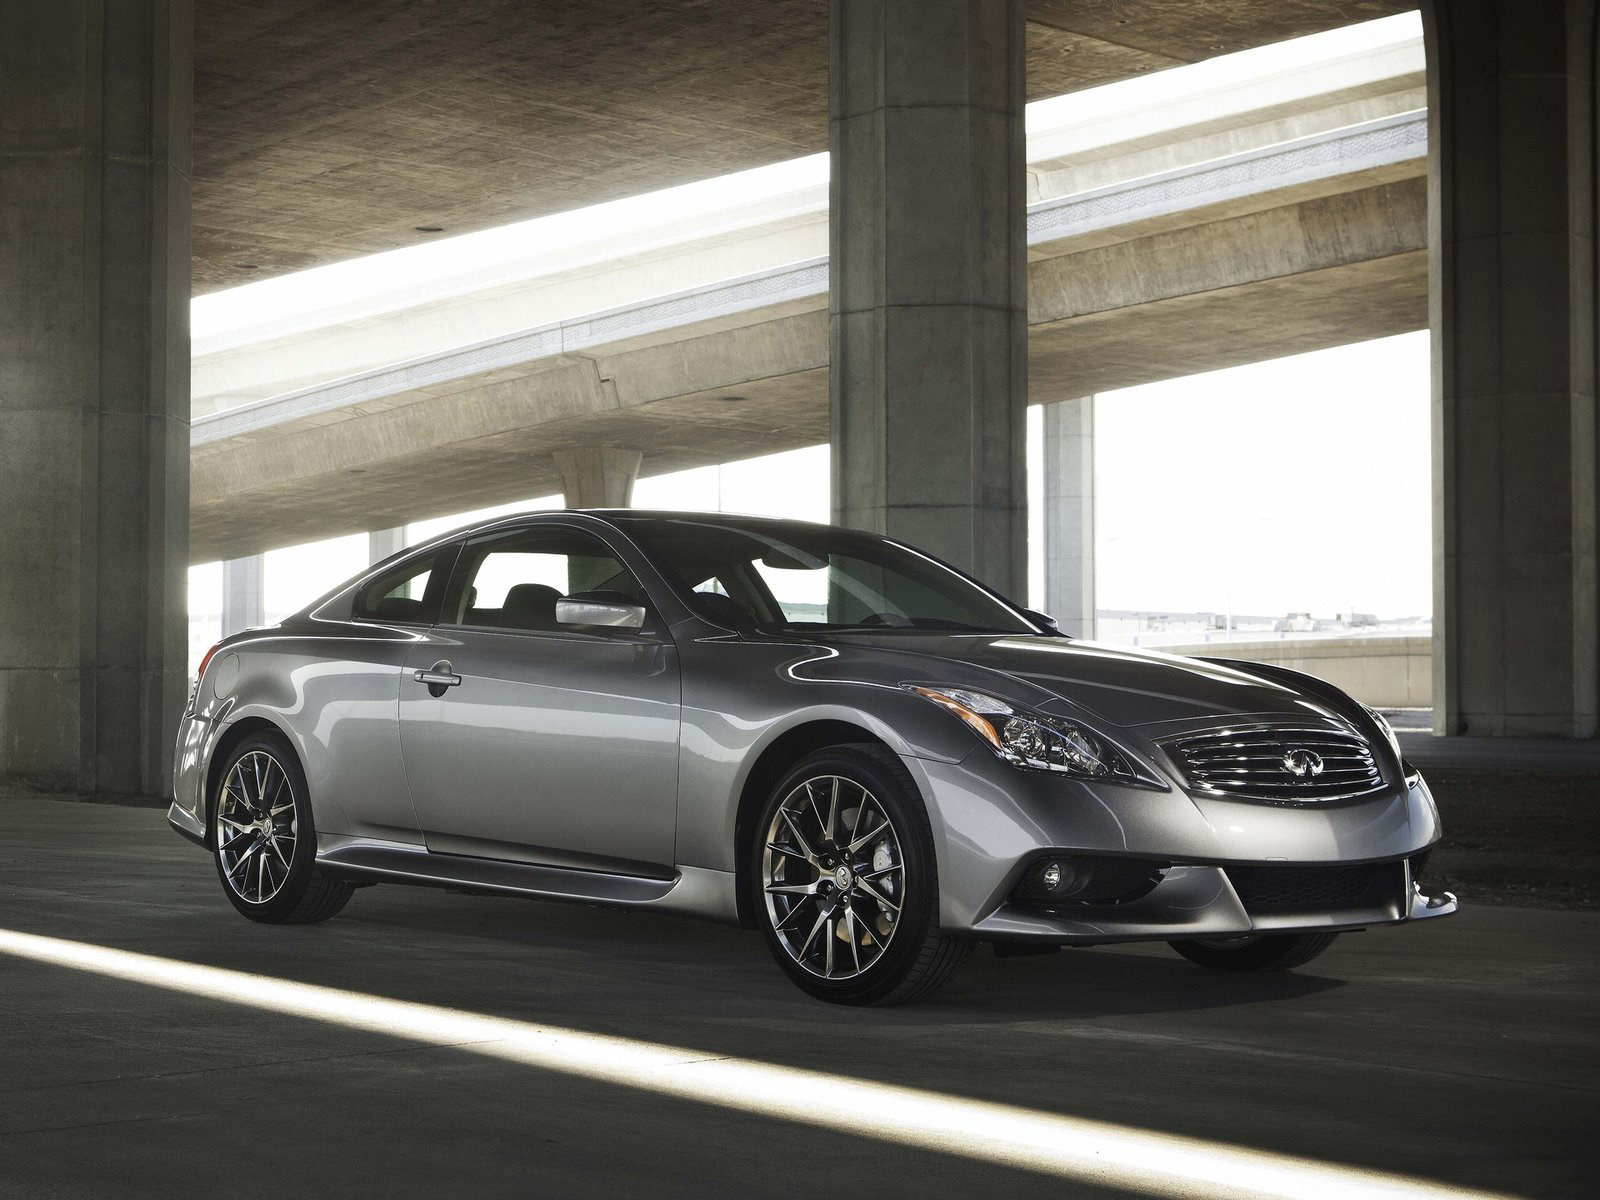 Infiniti IPL G Coupe car motorcycle scooter Wallpapers Download